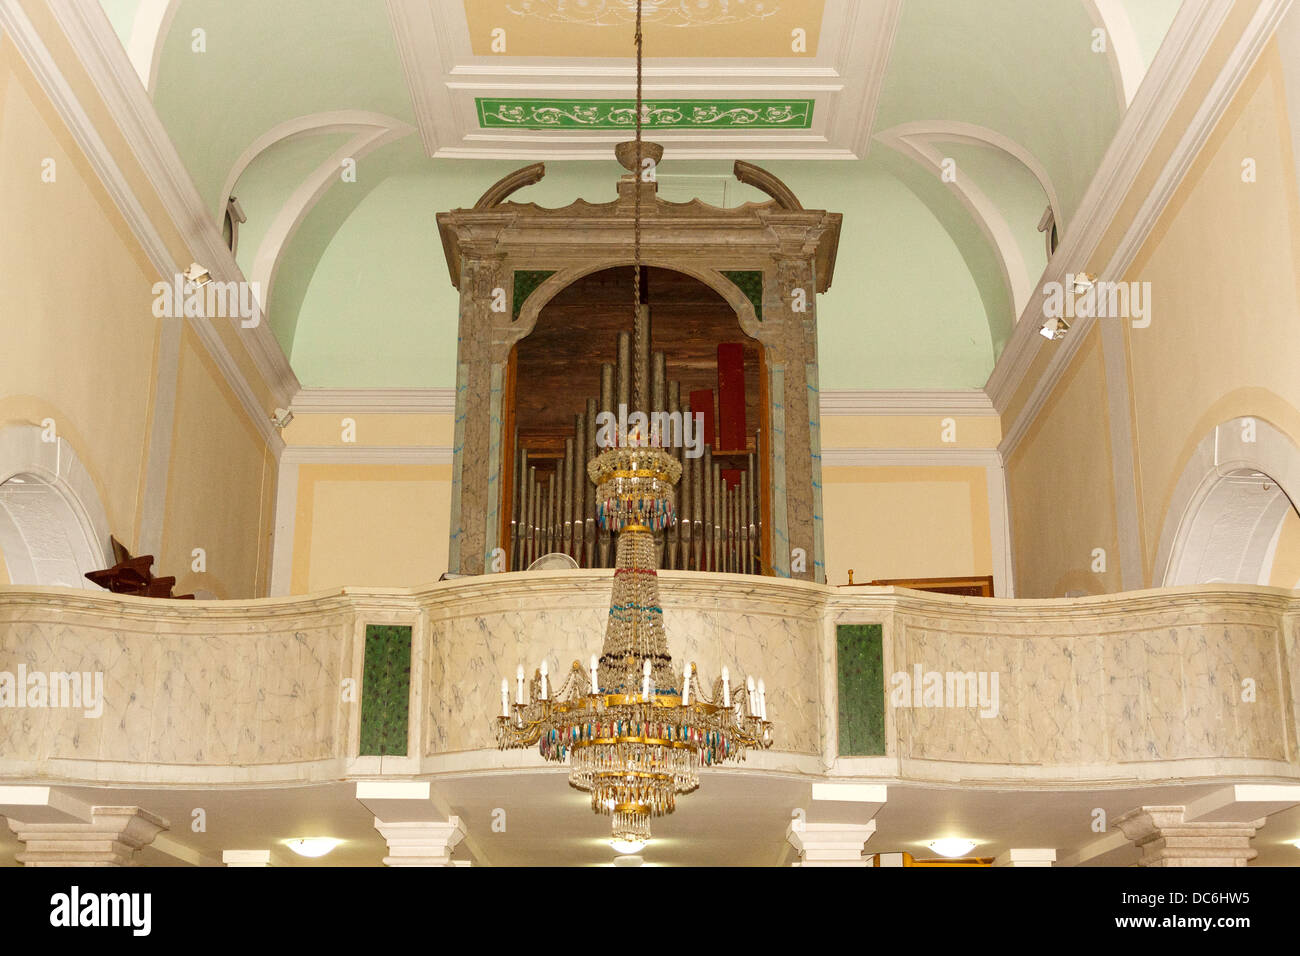 Organs in Church of the Annunciation in Supetar, Croatia - Stock Image